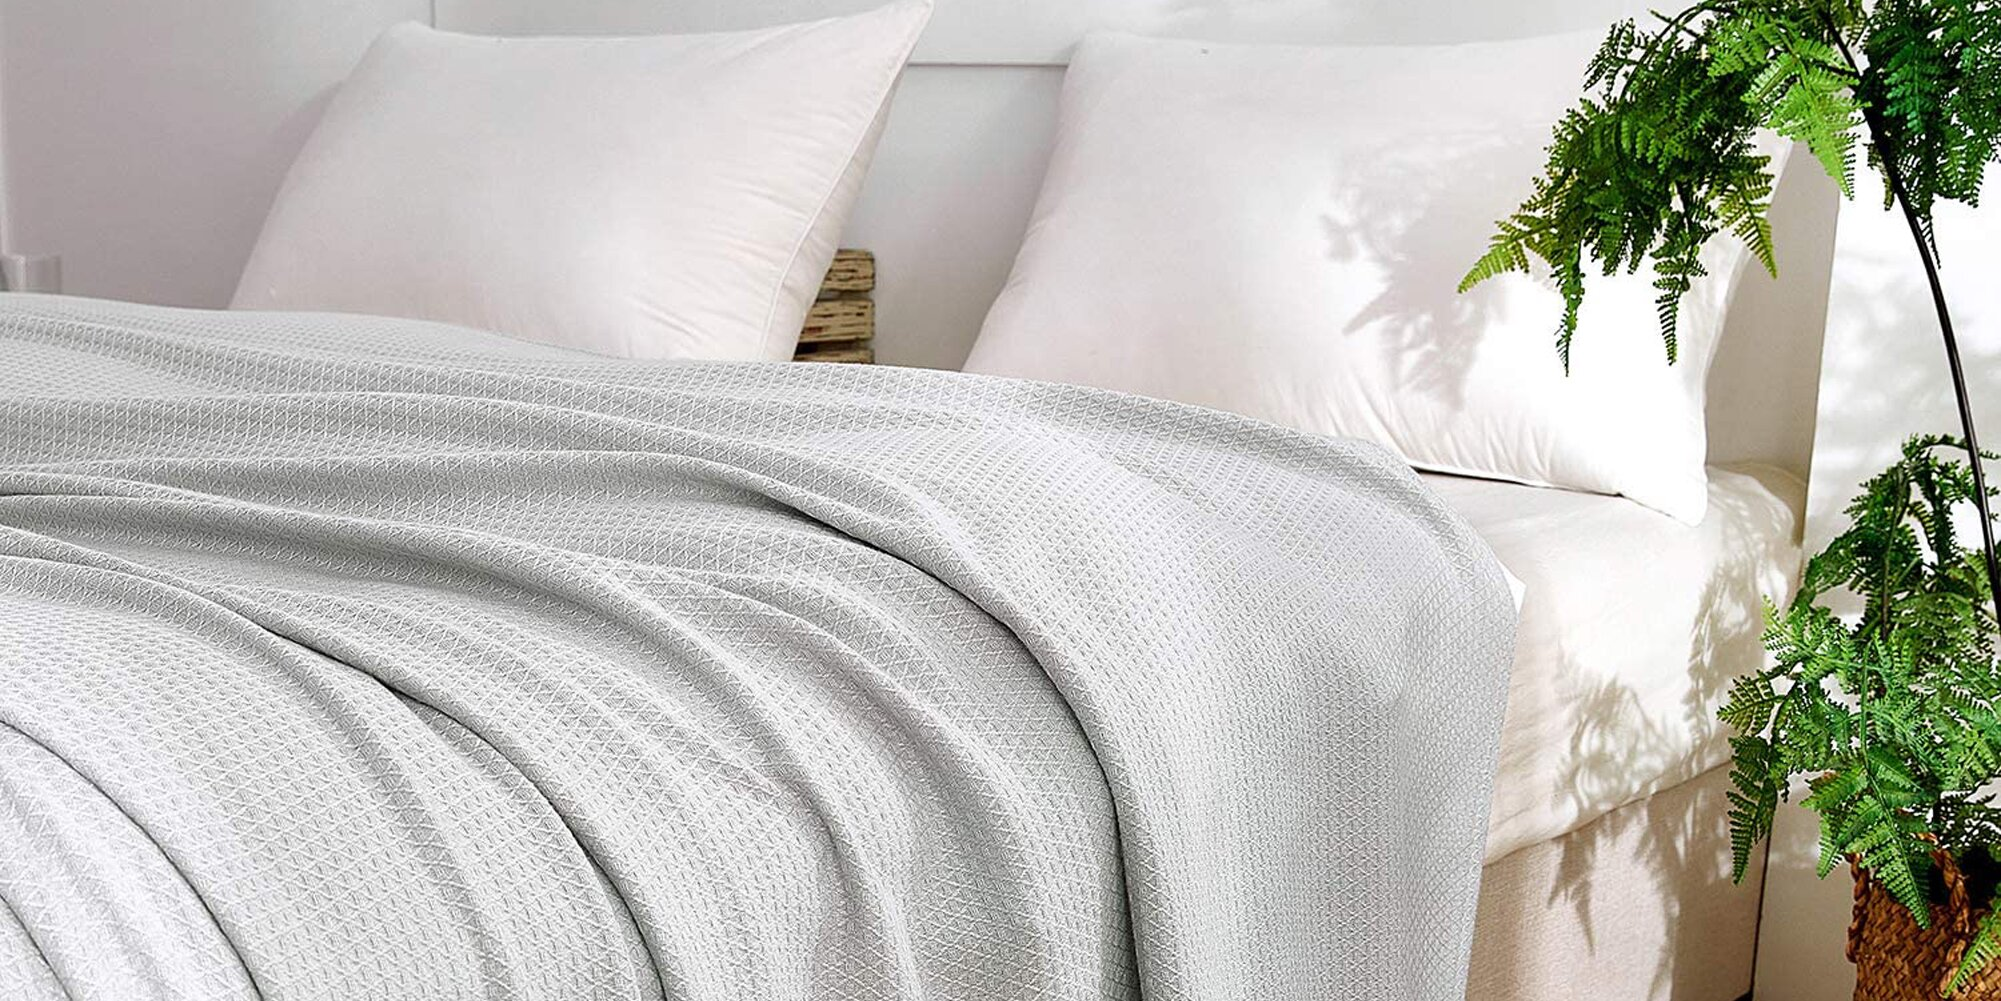 This Cooling Bamboo Blanket Is a 'Game Changer' for Hot Summer Nights-and It's Just $28